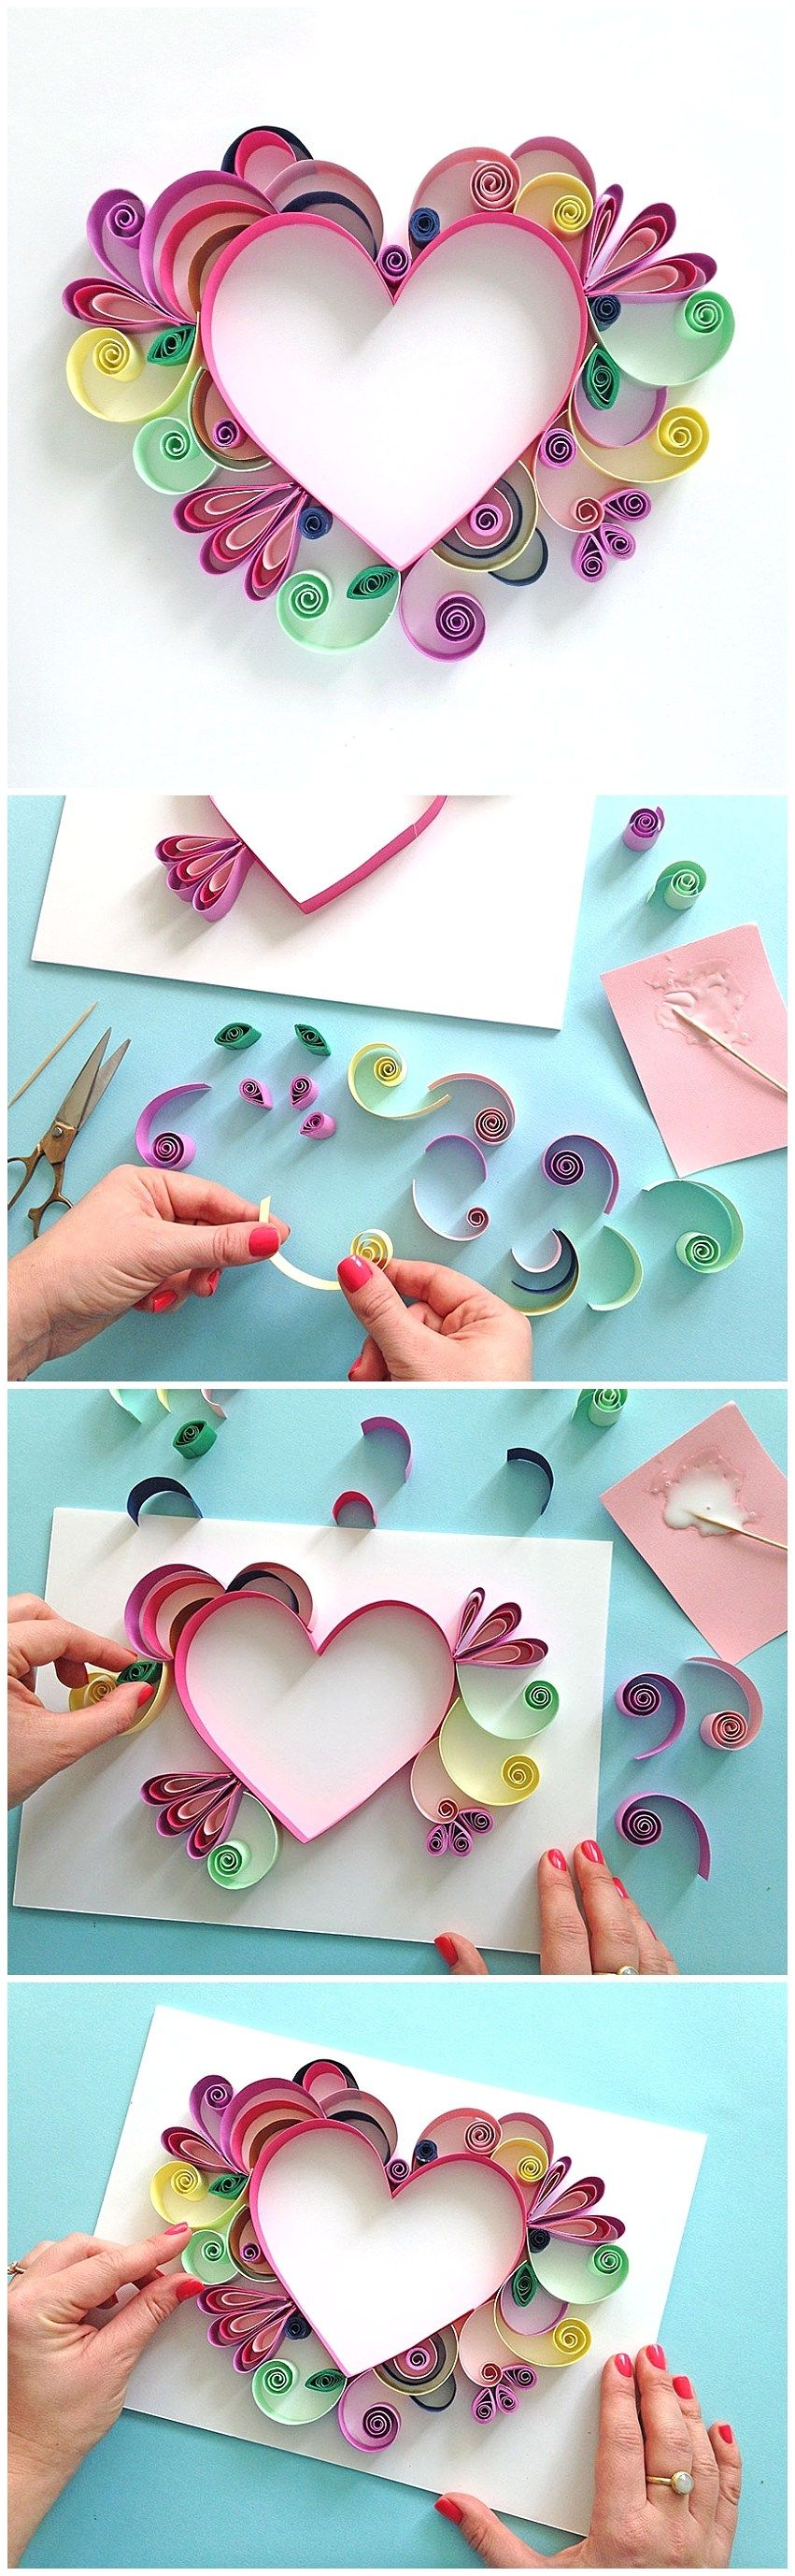 Learn How To Quill A Darling Heart Shaped Mother S Day Paper Craft Gift Idea Via Chase Moms And Grandmas Will Love These Pretty Handmade Works Of